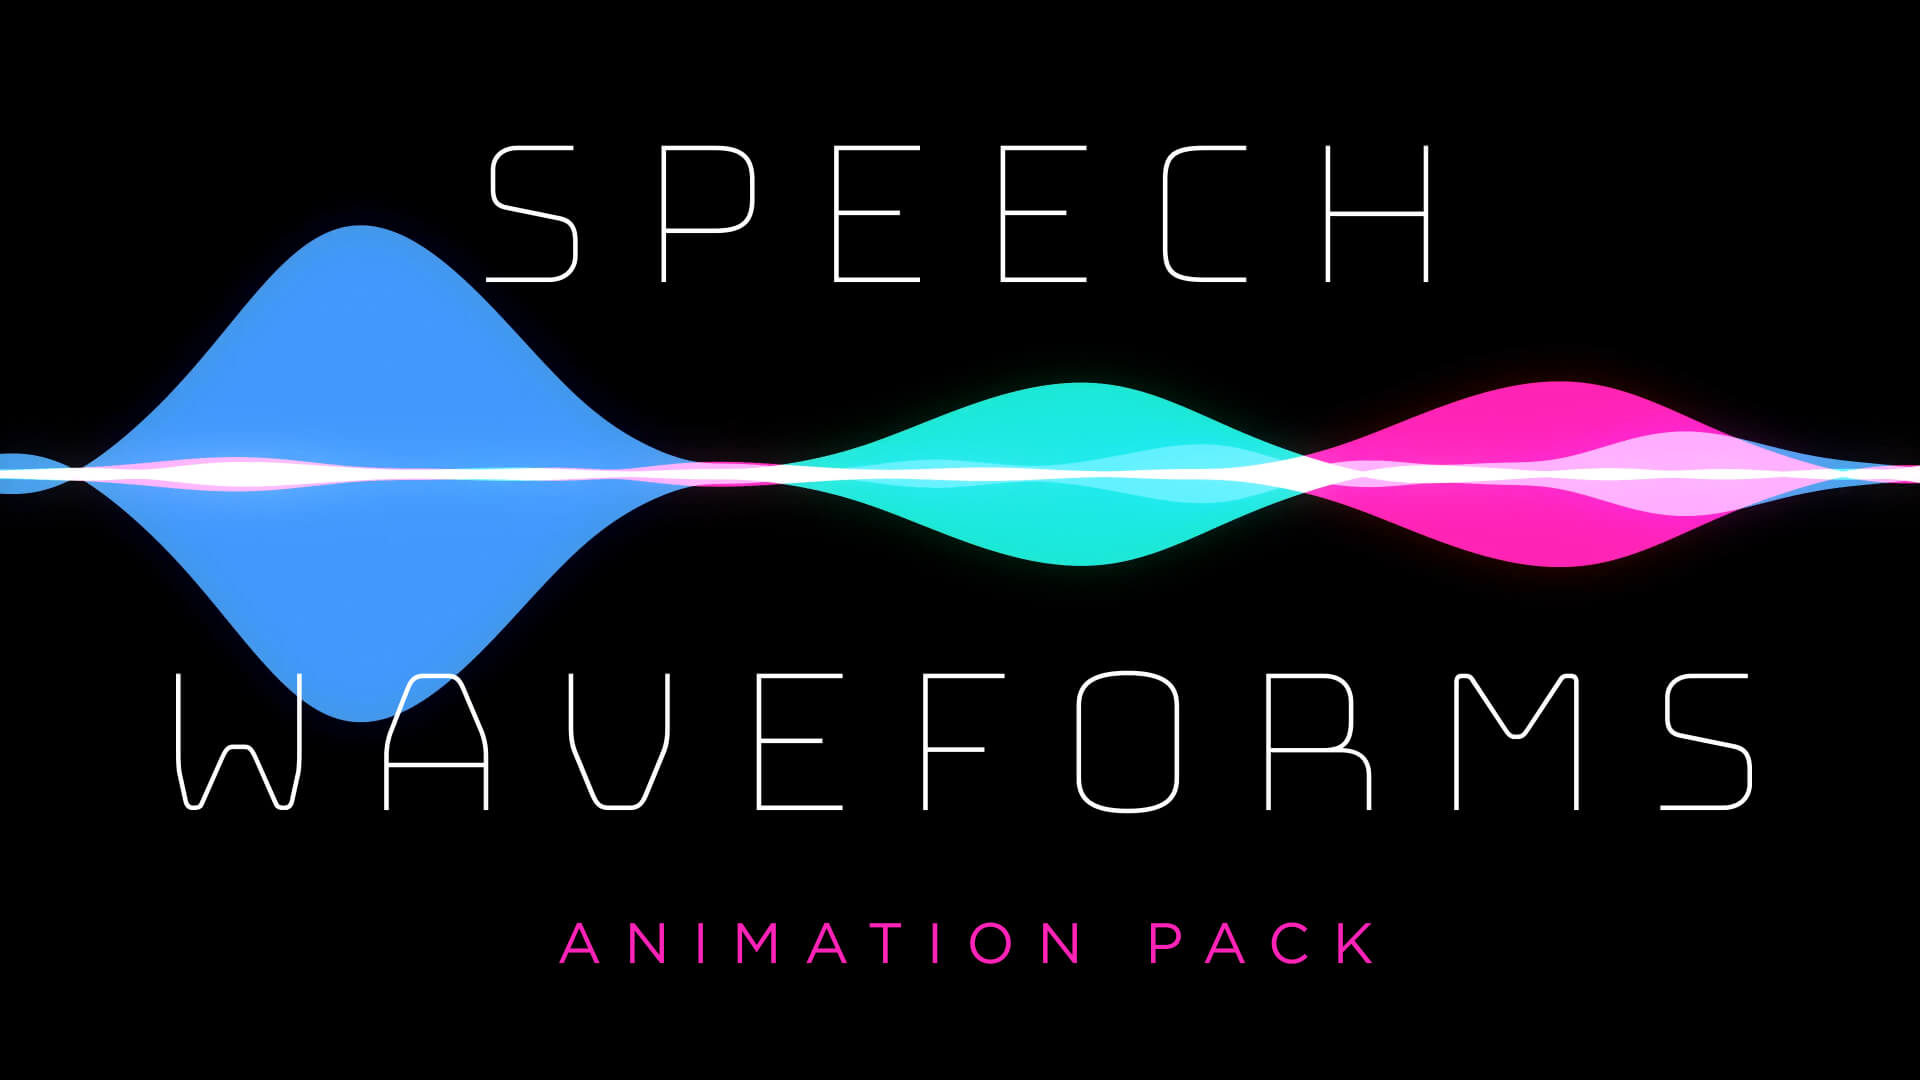 Speech Waveform Animation Stock Footage Pack HD